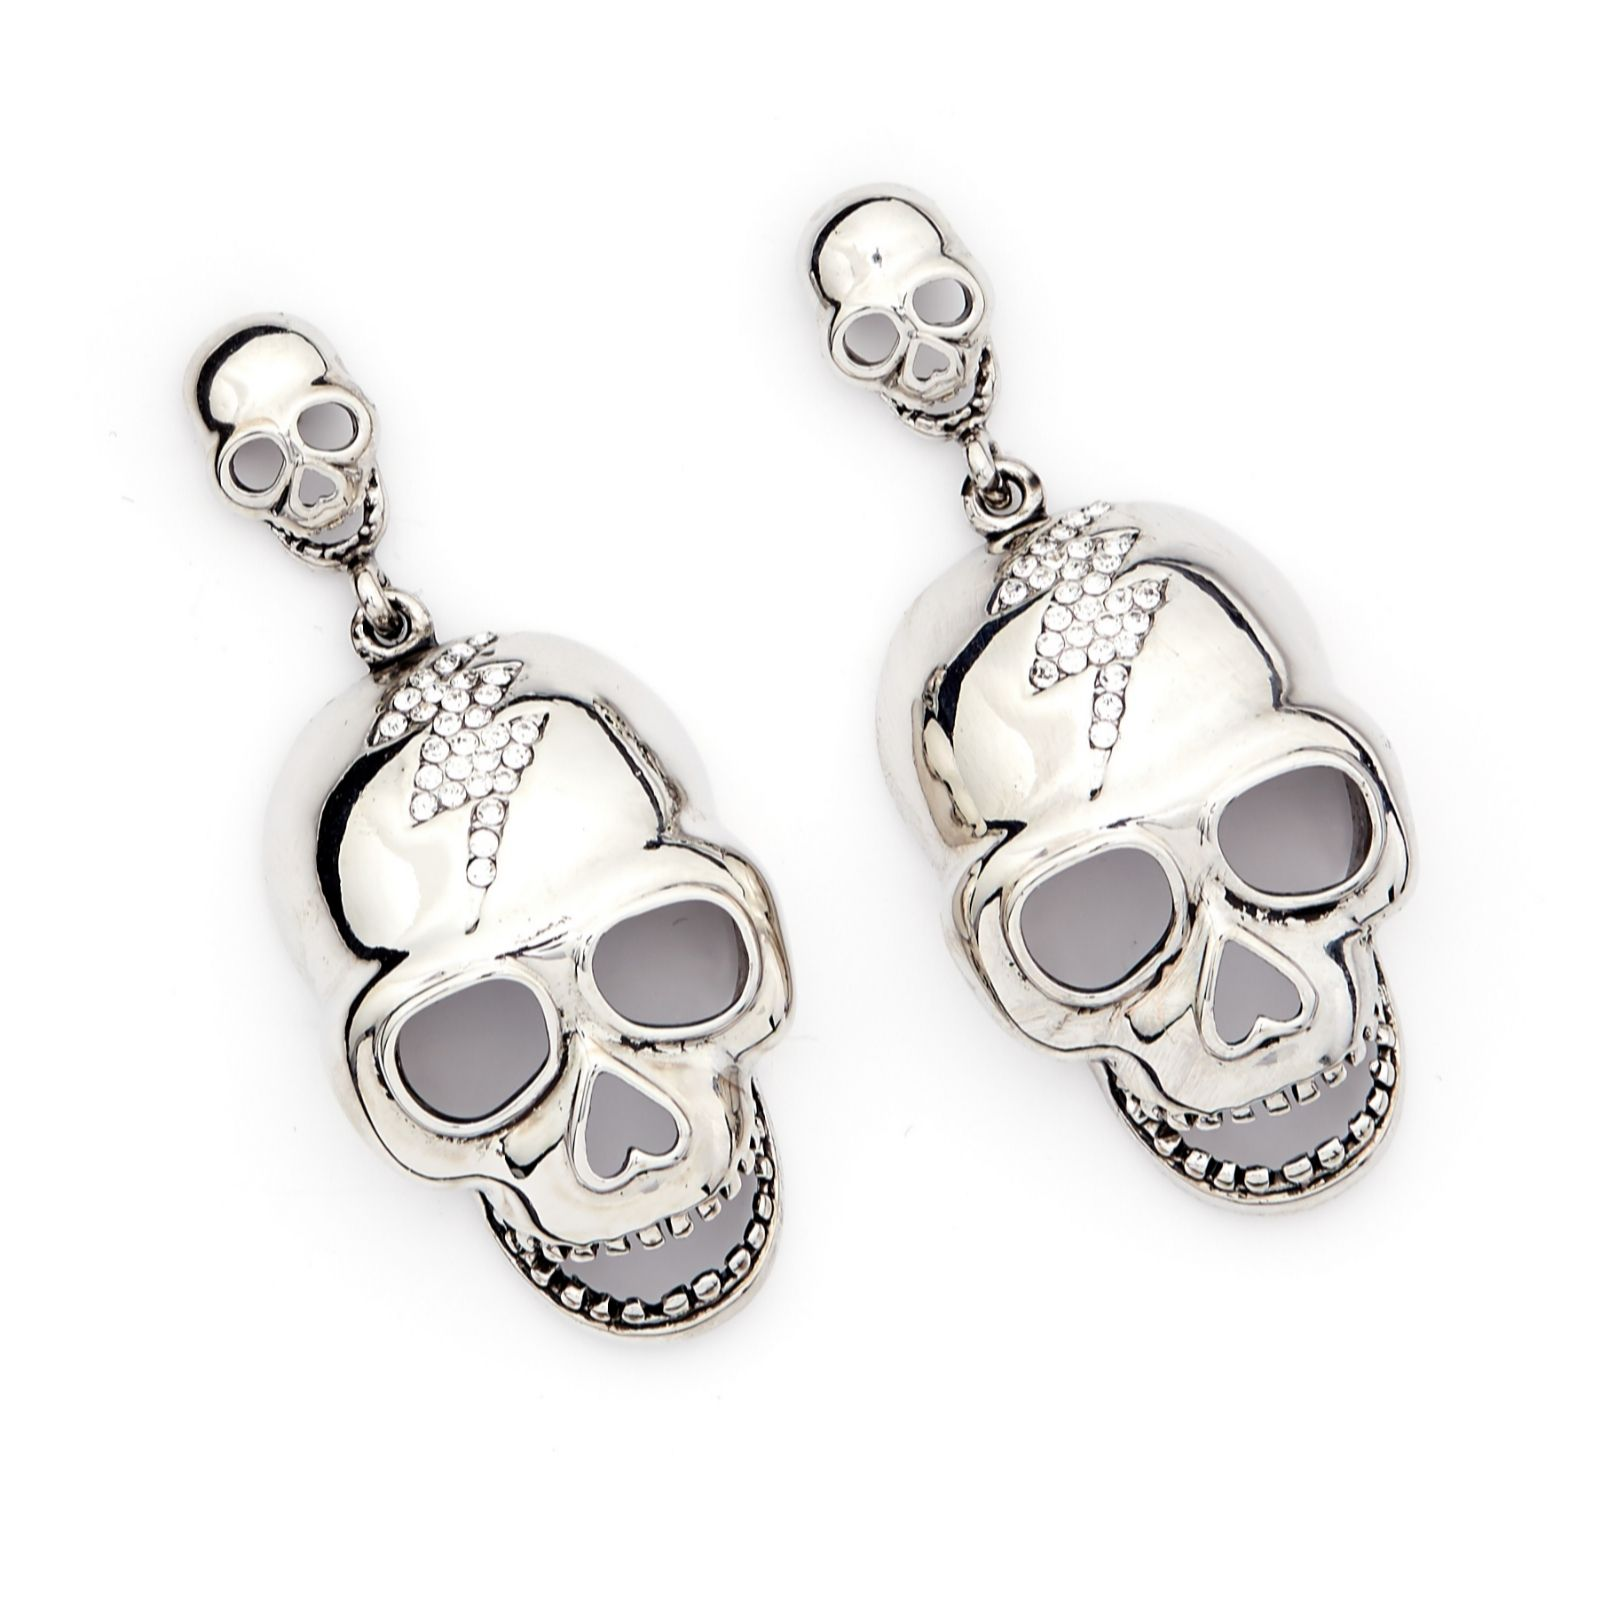 a20e76cb7 Butler & Wilson Crystal Skull Drop Earrings - QVC UK